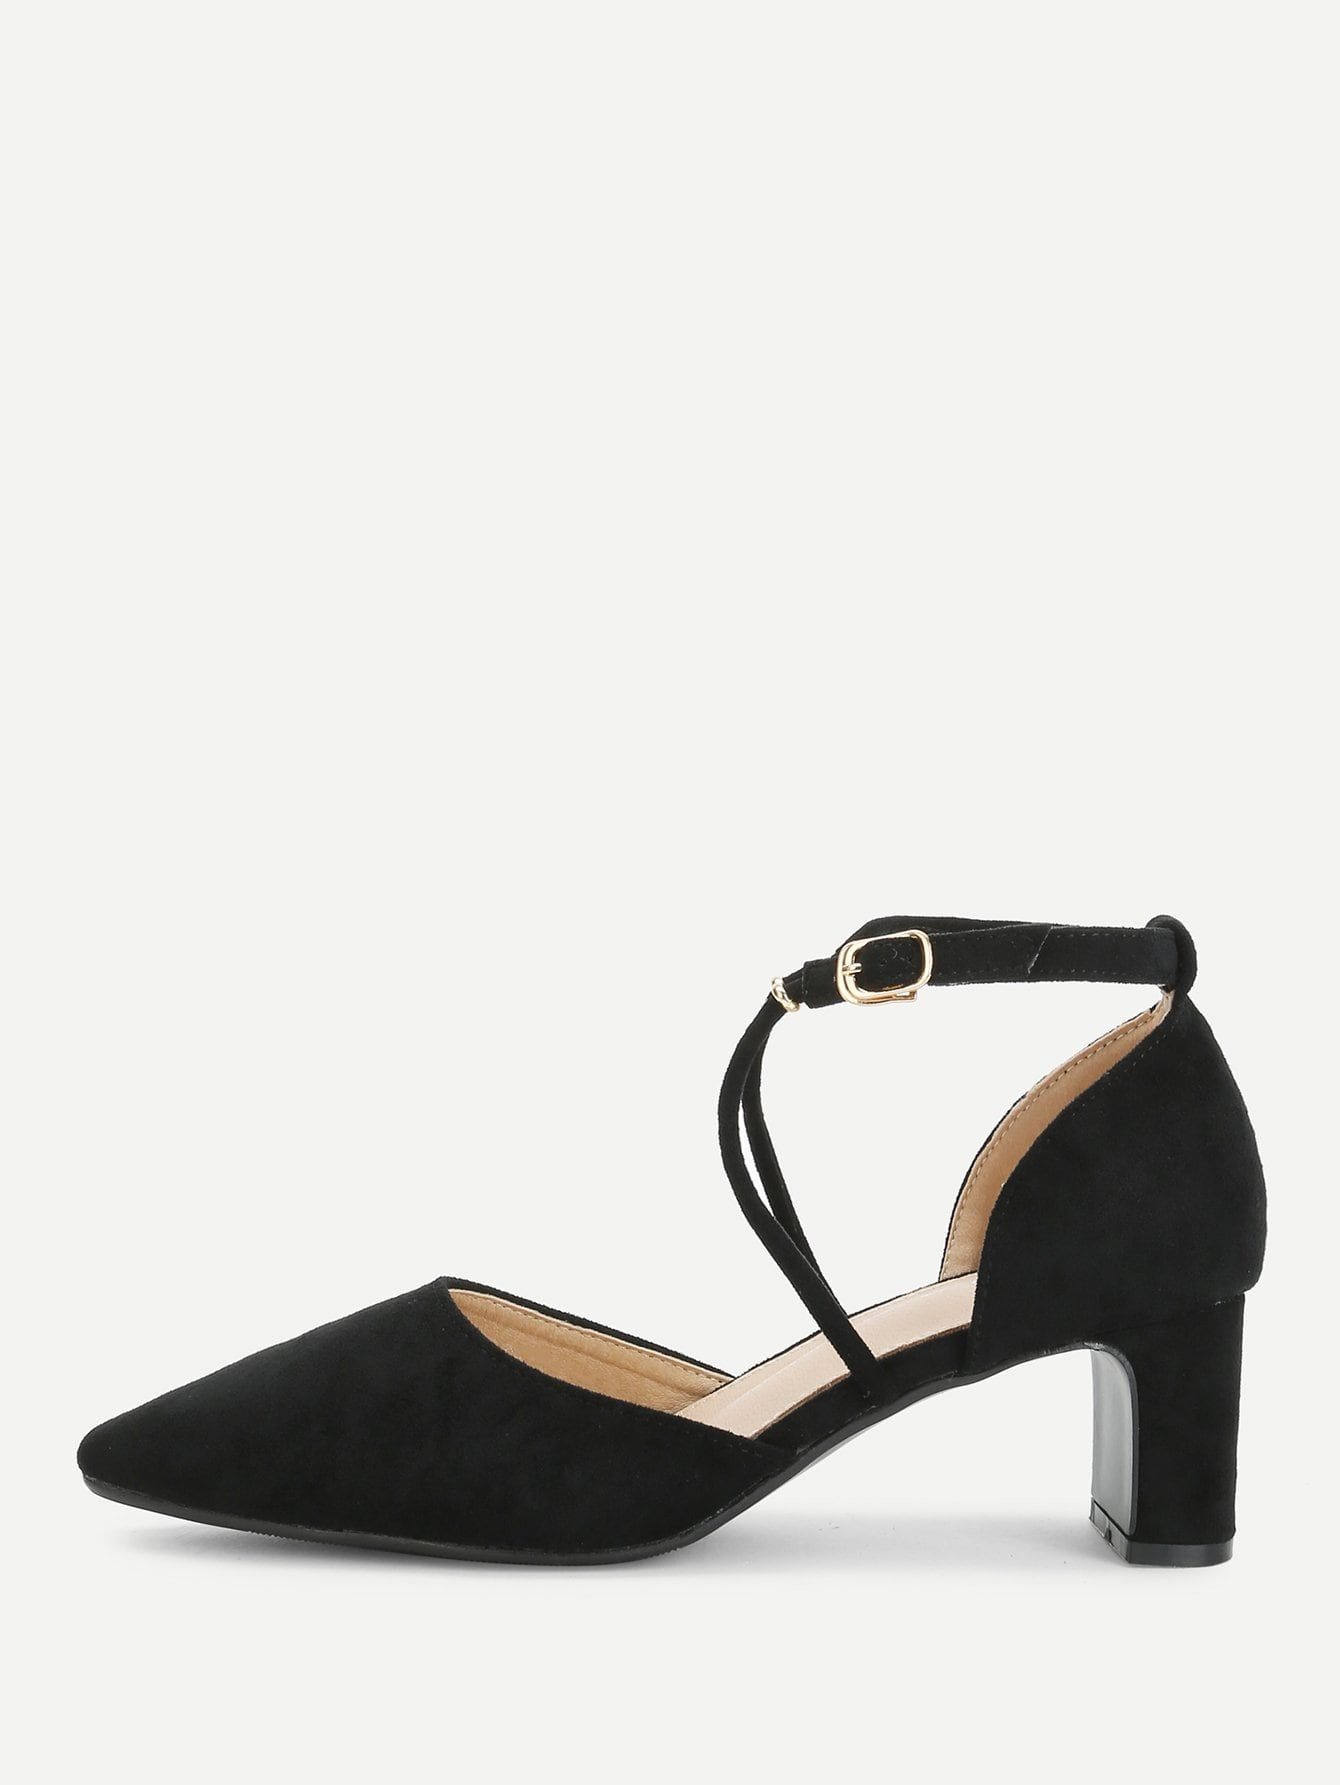 bc6f70e3a0 Slingbacks Mary Jane Heels Check out this Slingbacks Mary Jane Heels on  SHEIN and explore more to meet your fashion needs!